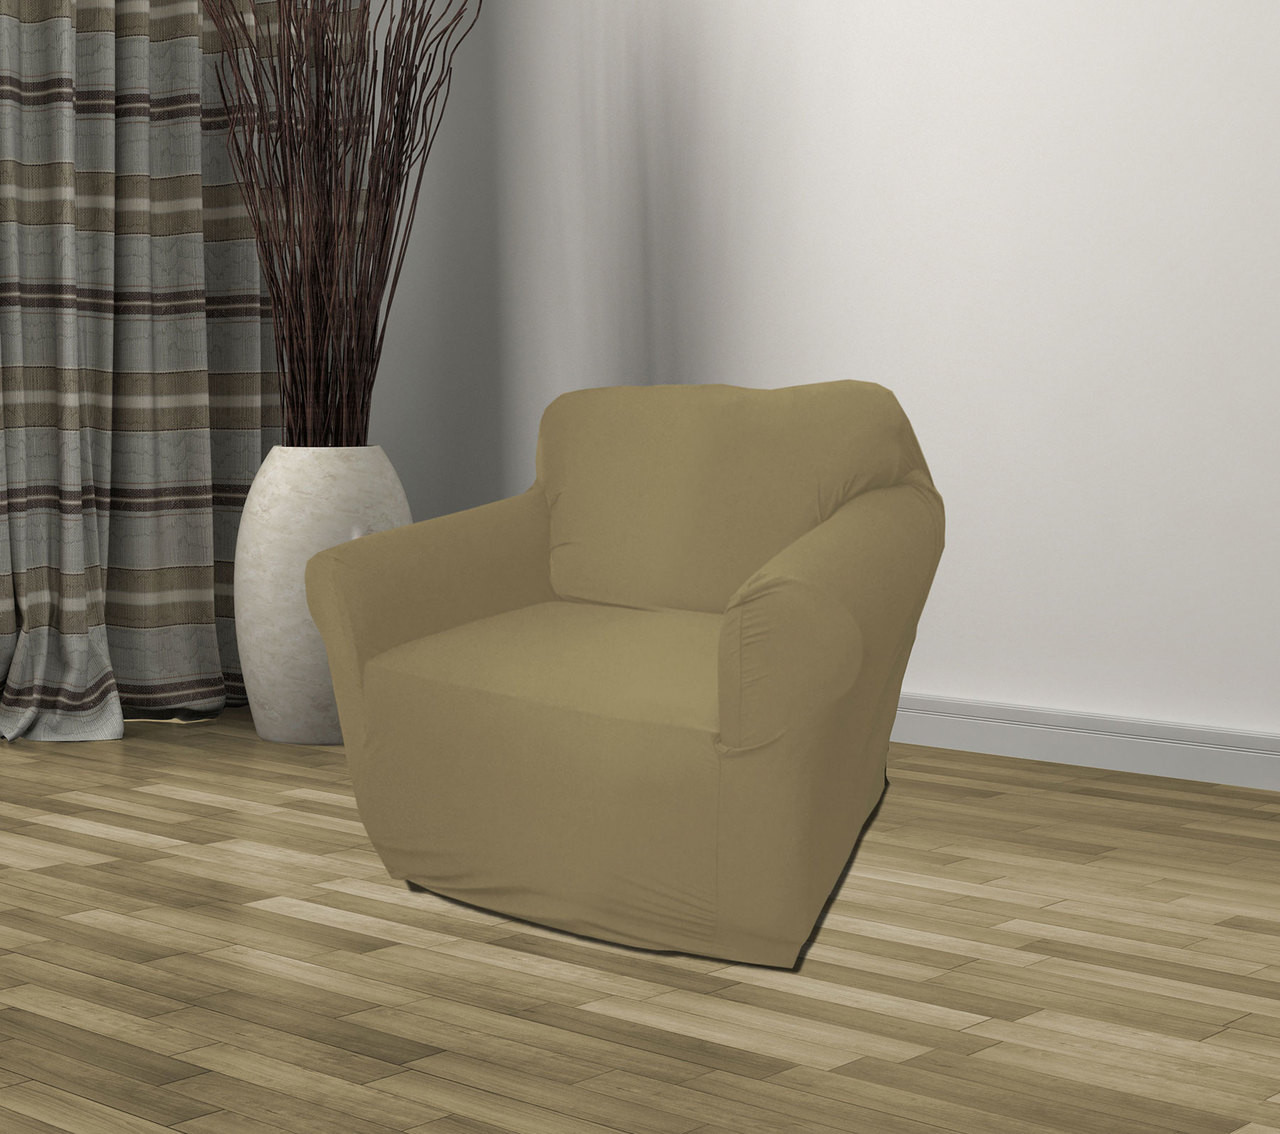 taupe chair covers where to buy a bean bag jersey sofa stretch slipcover couch cover love seat kashi home loveseat